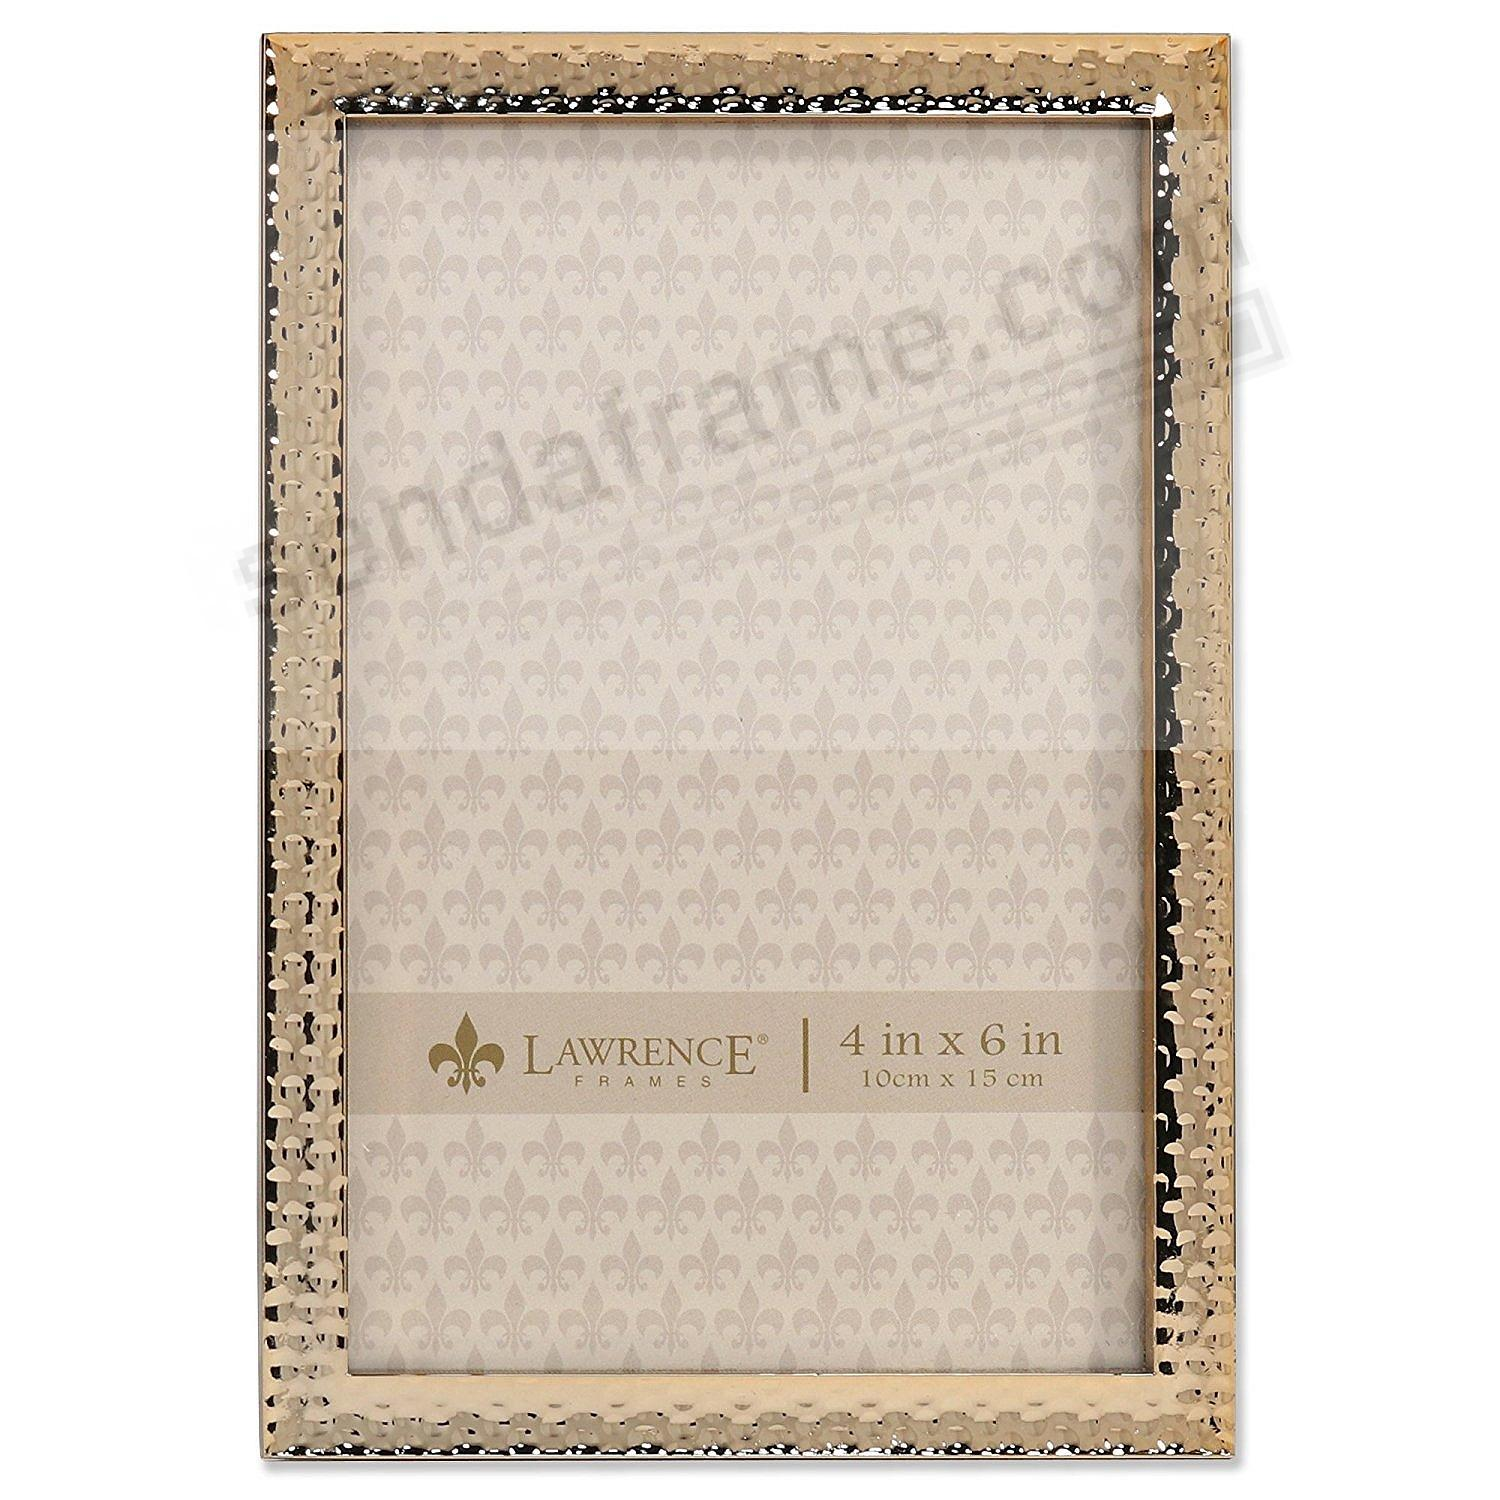 Hammered Gold finish 4x6 frame by Lawrence®